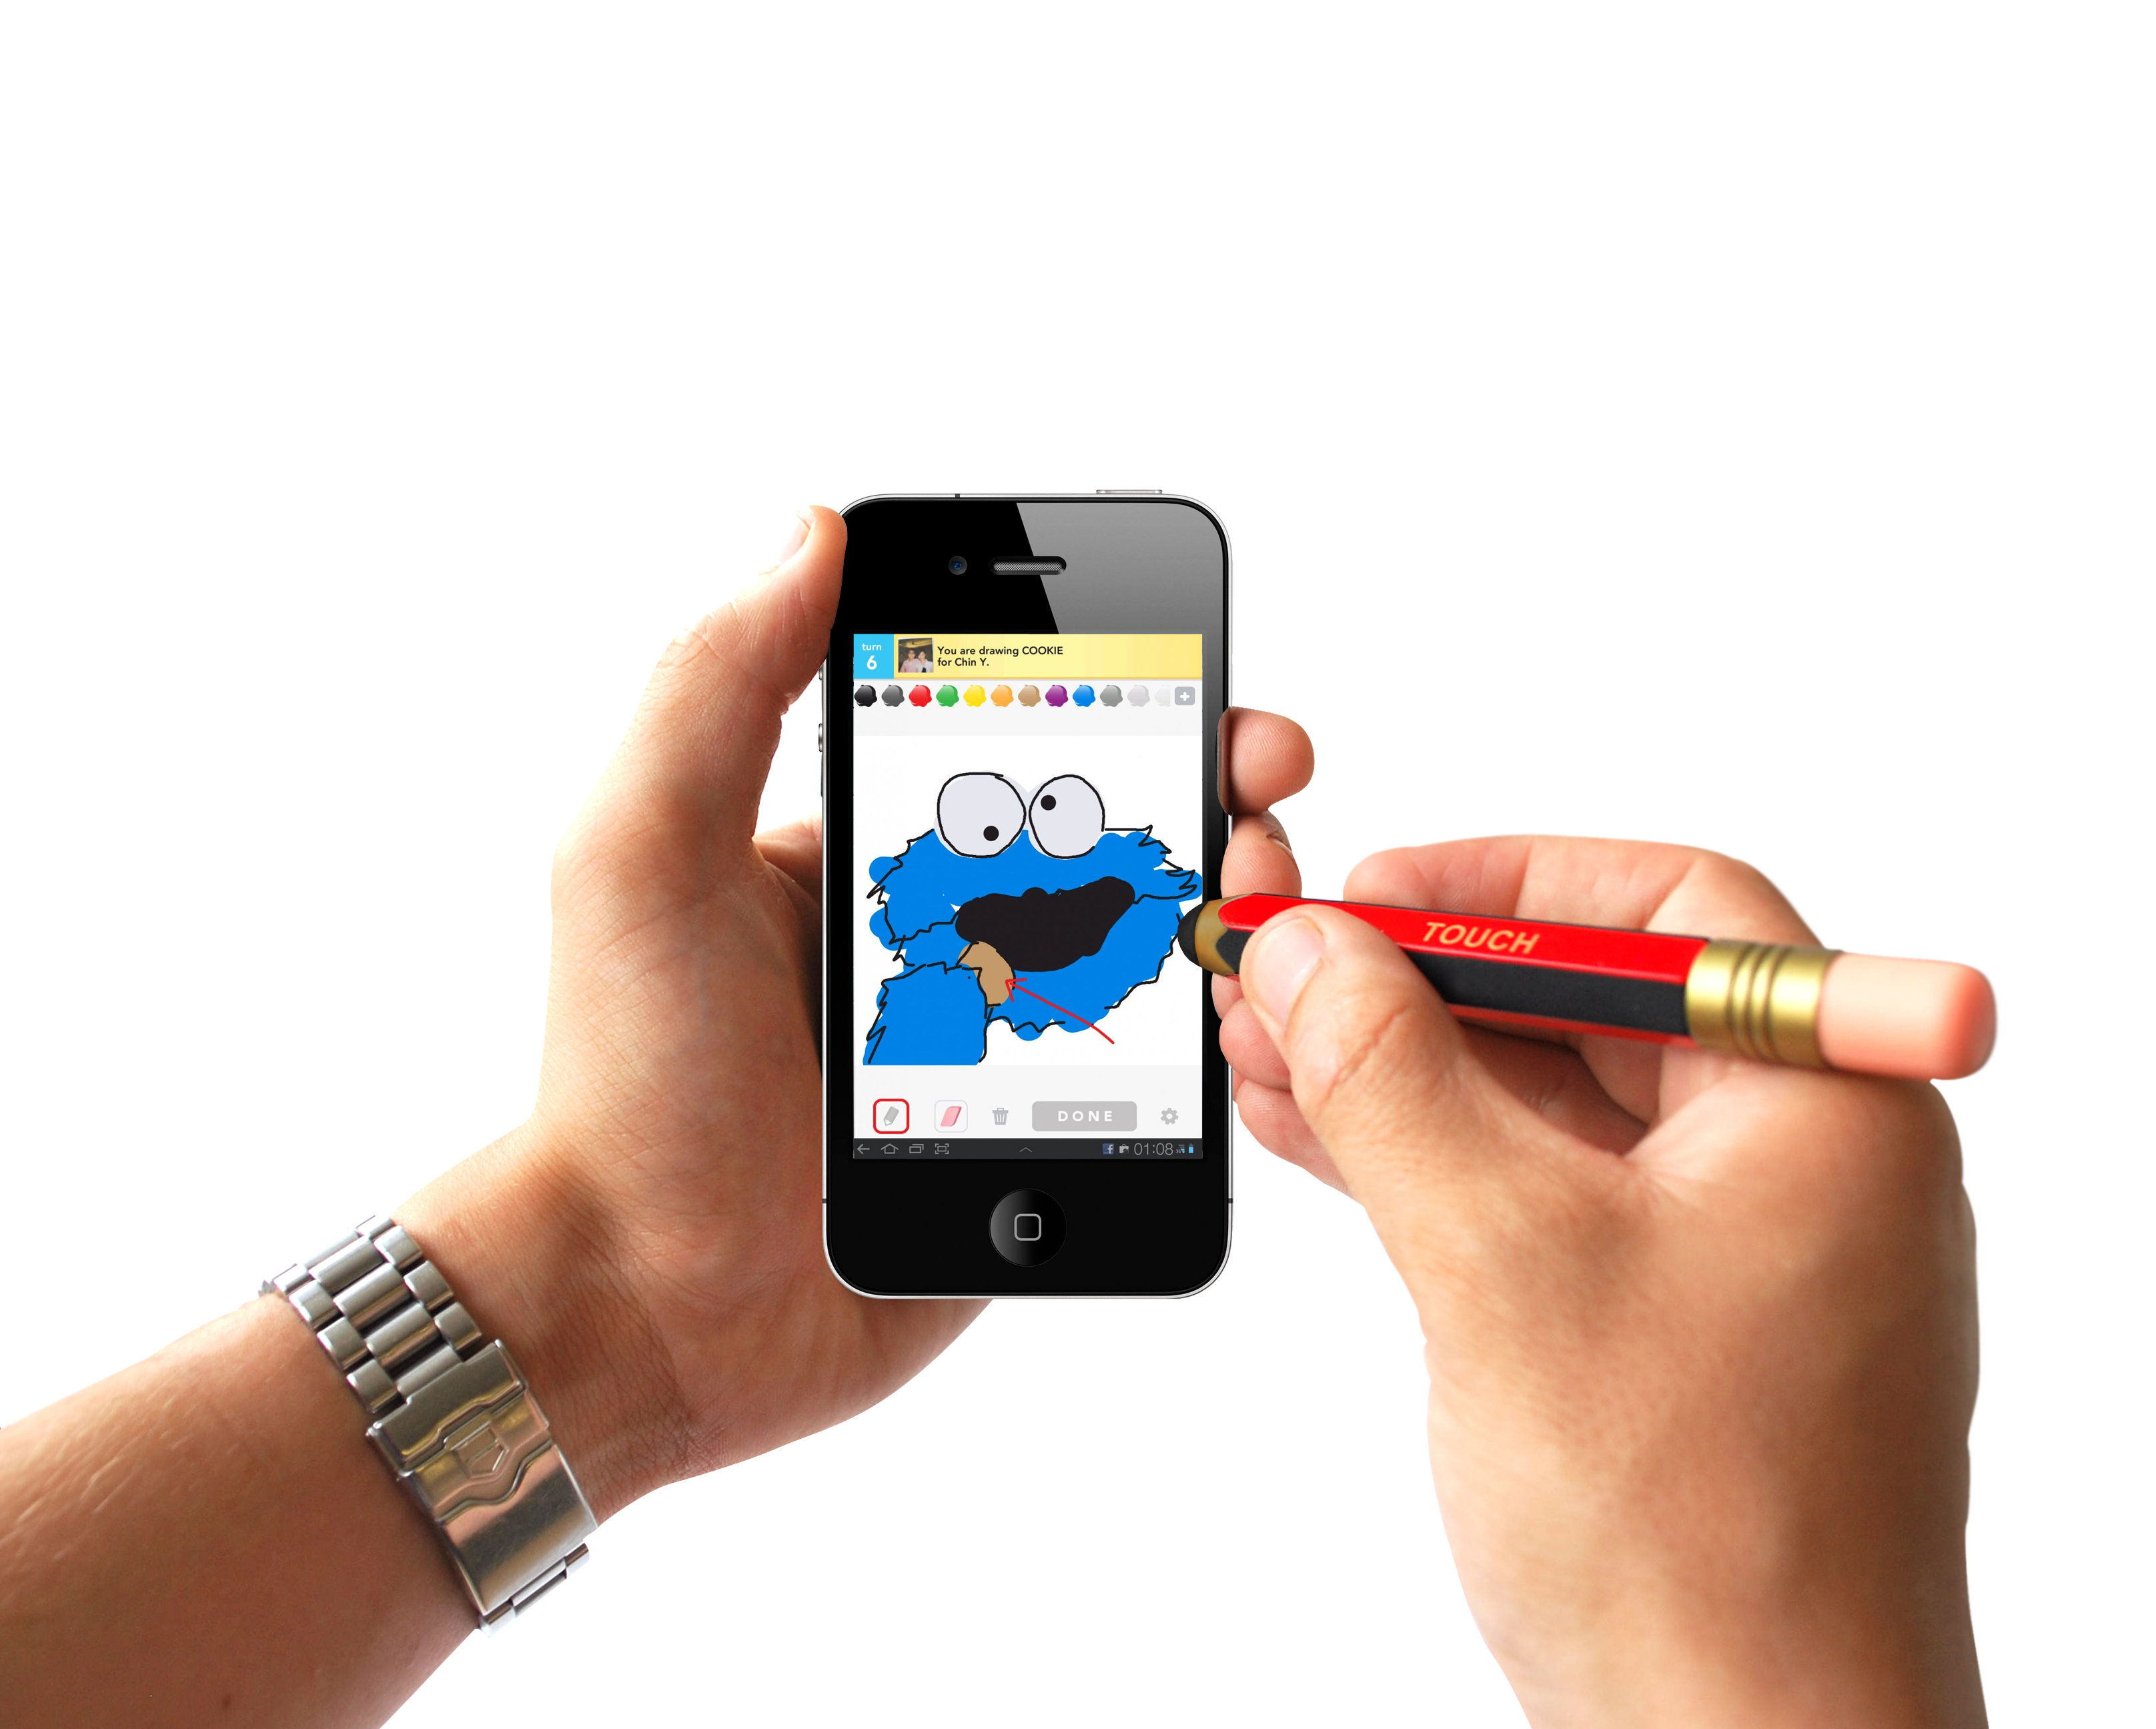 touch screen stylus  pencil  content gallery   more accurate than using your fingers